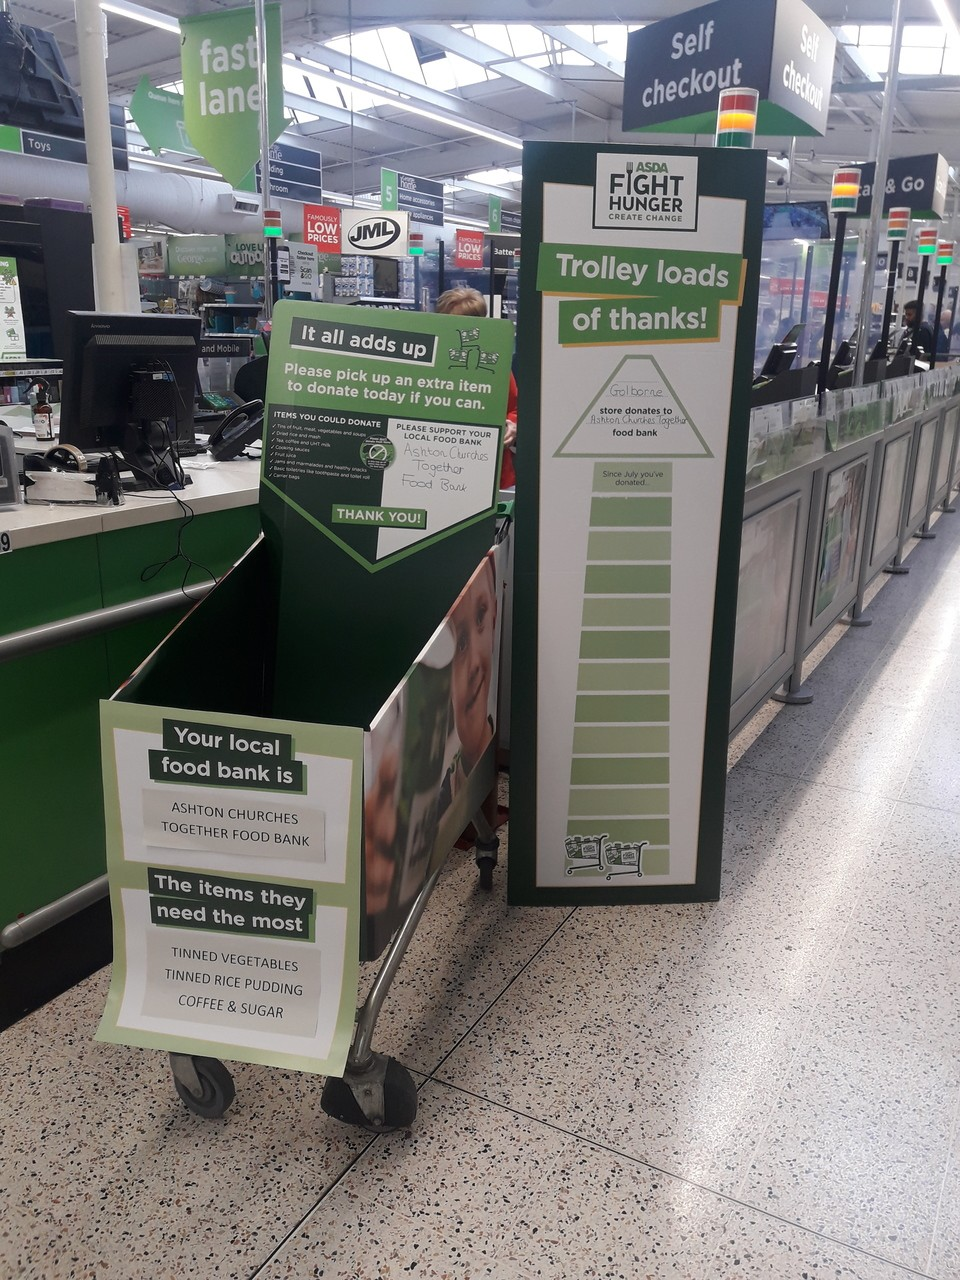 Fight Hunger Create Change at Asda Golborne  | Asda Golborne